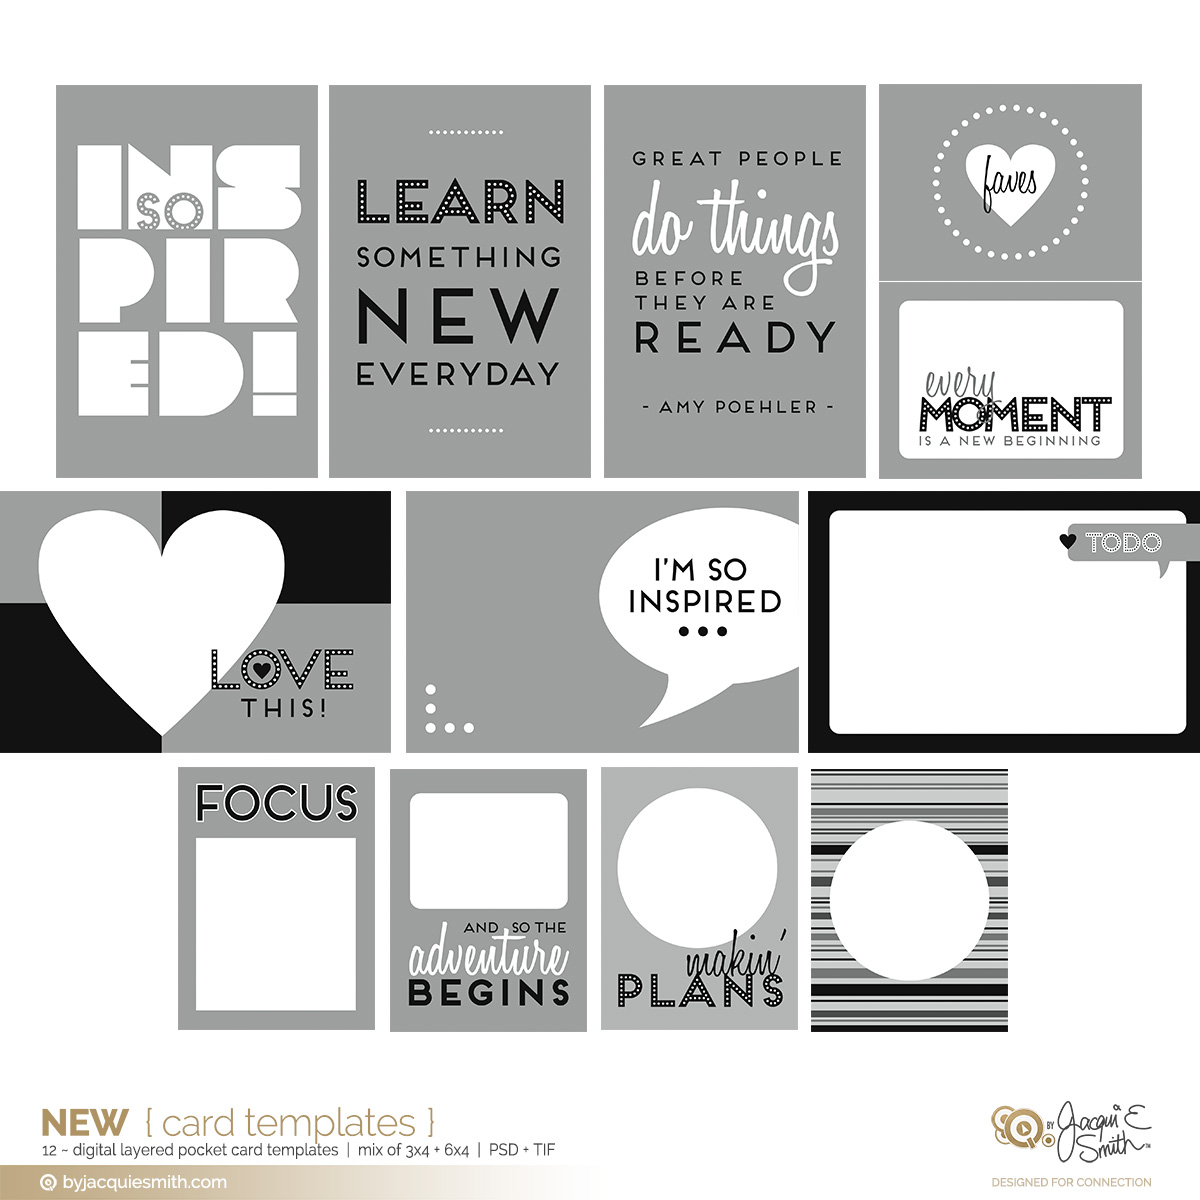 New digital pocket card layered templates at byjacquiesmith.com